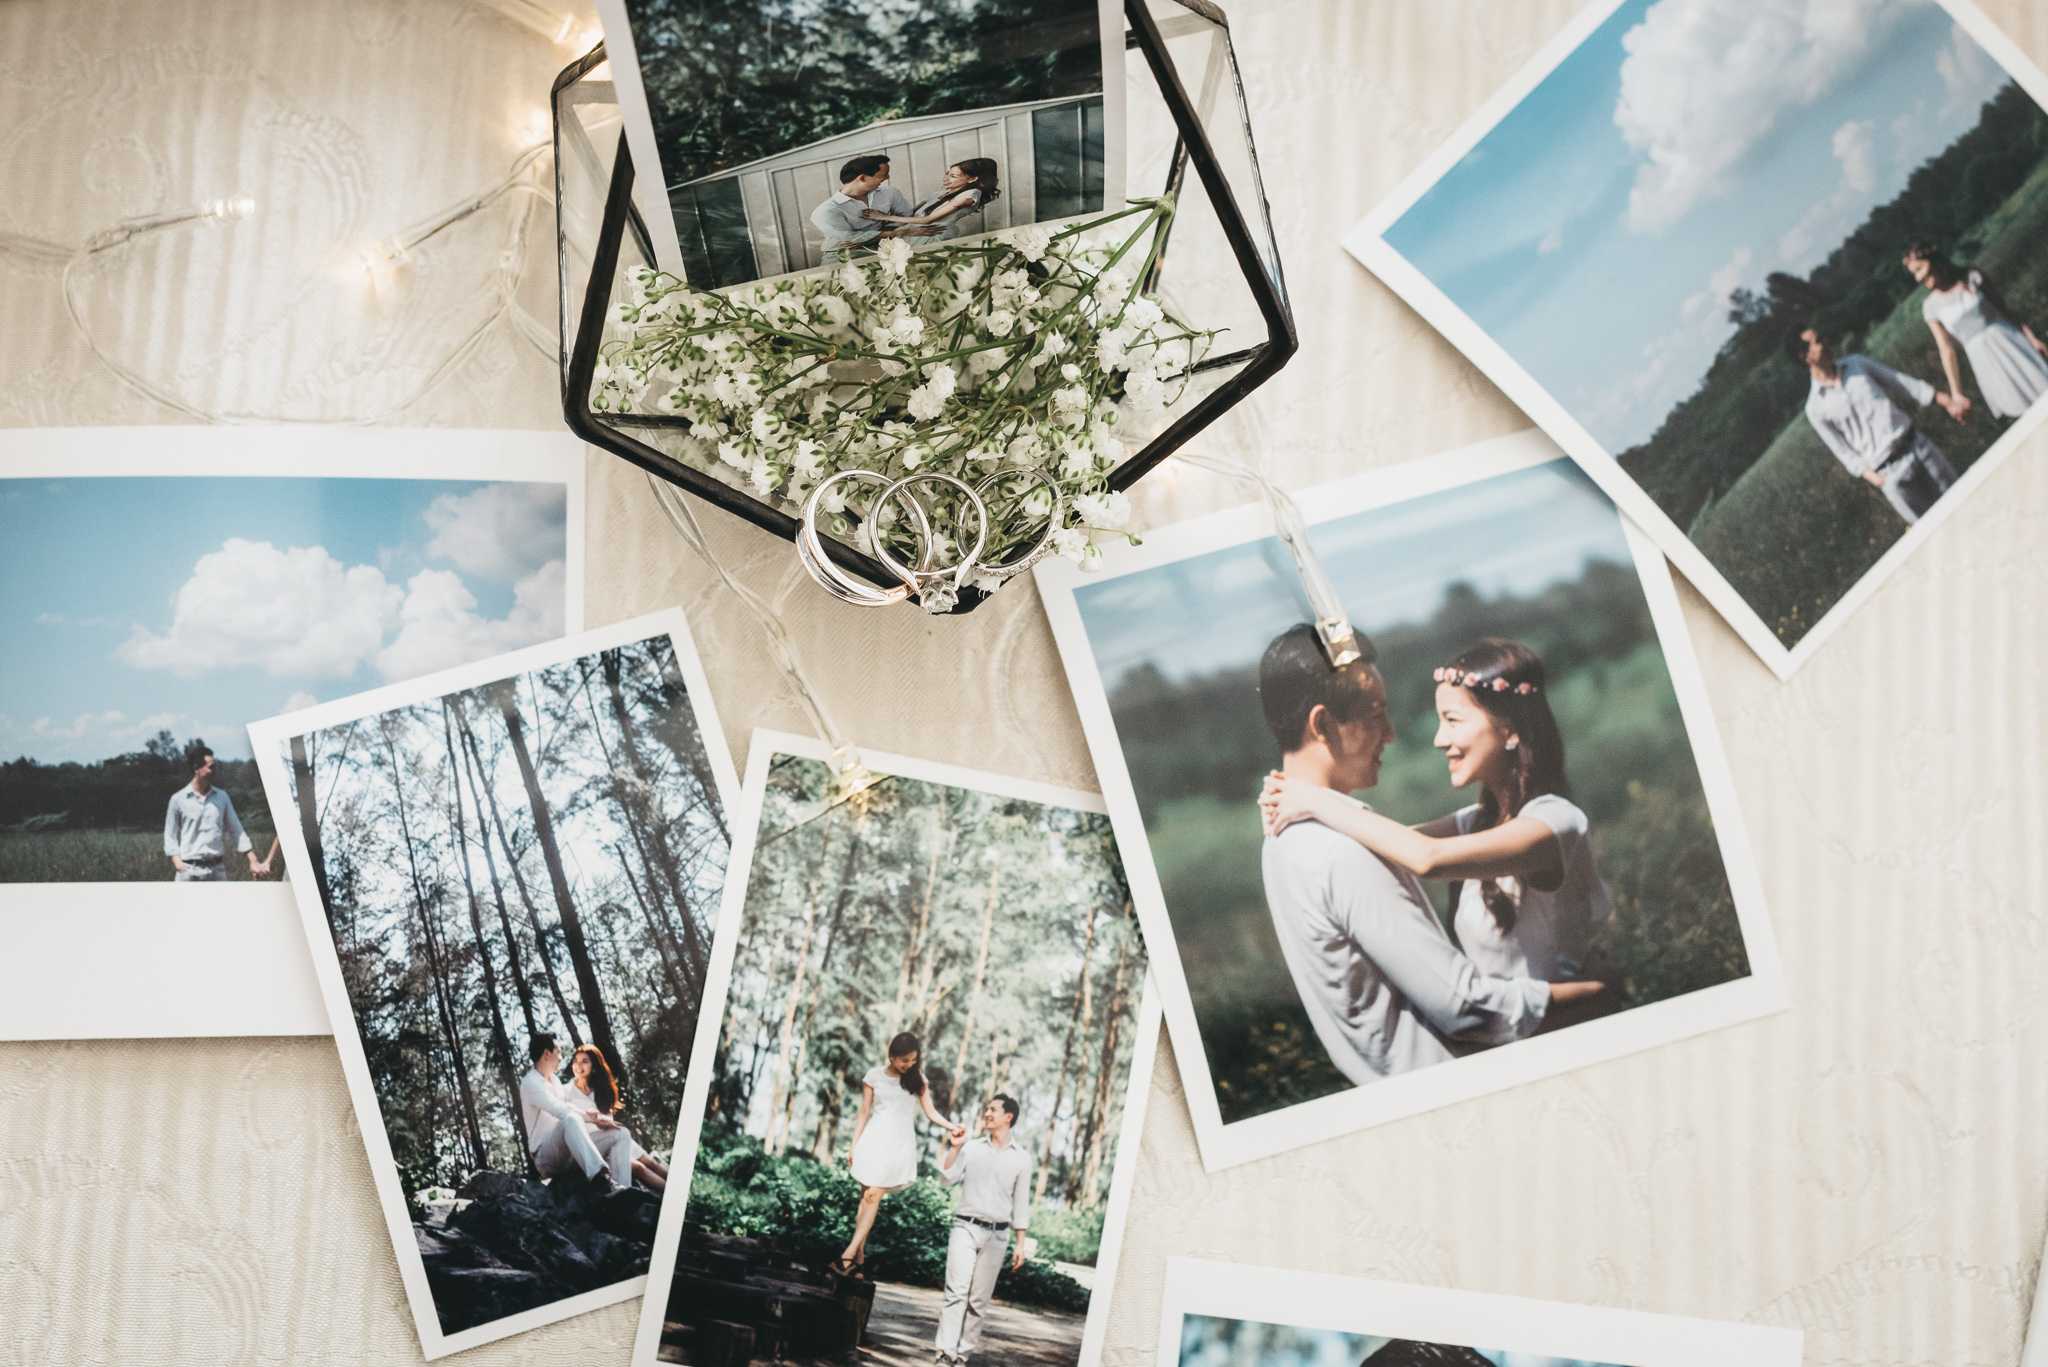 Fiona & Terence Wedding Day Highlights (resized for sharing) - 223.jpg